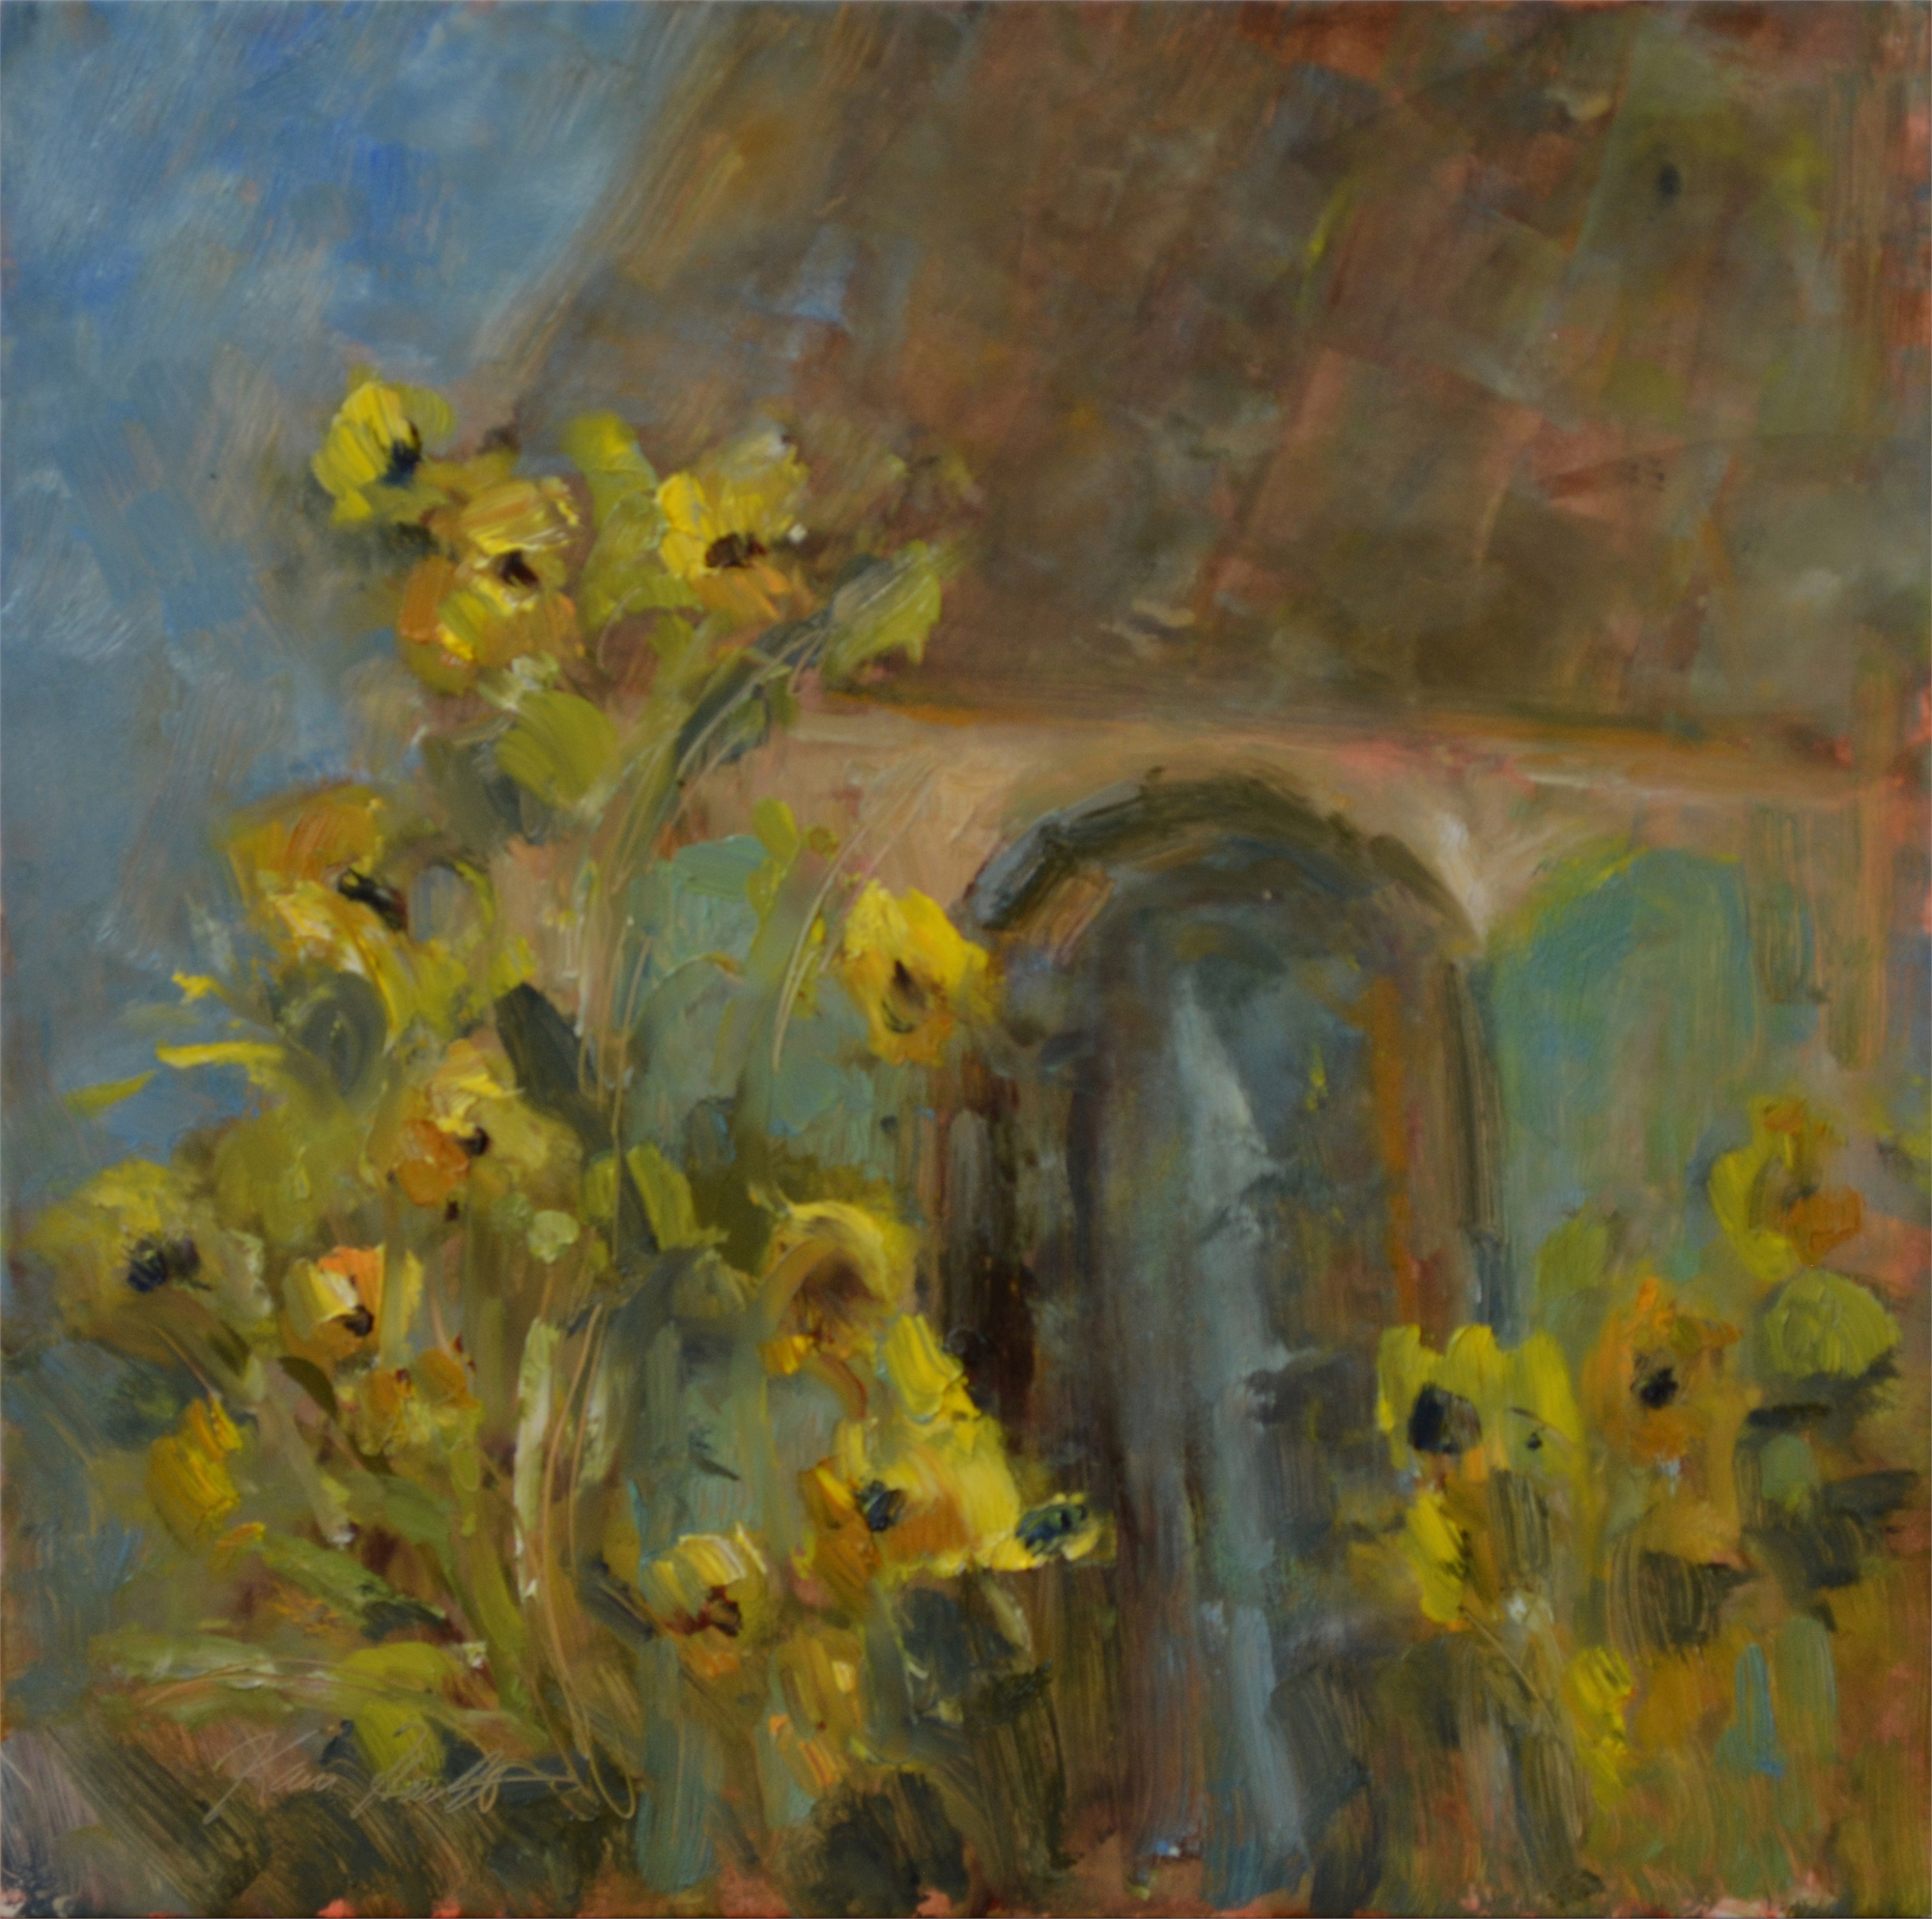 French Sunflowers by Karen Hewitt Hagan